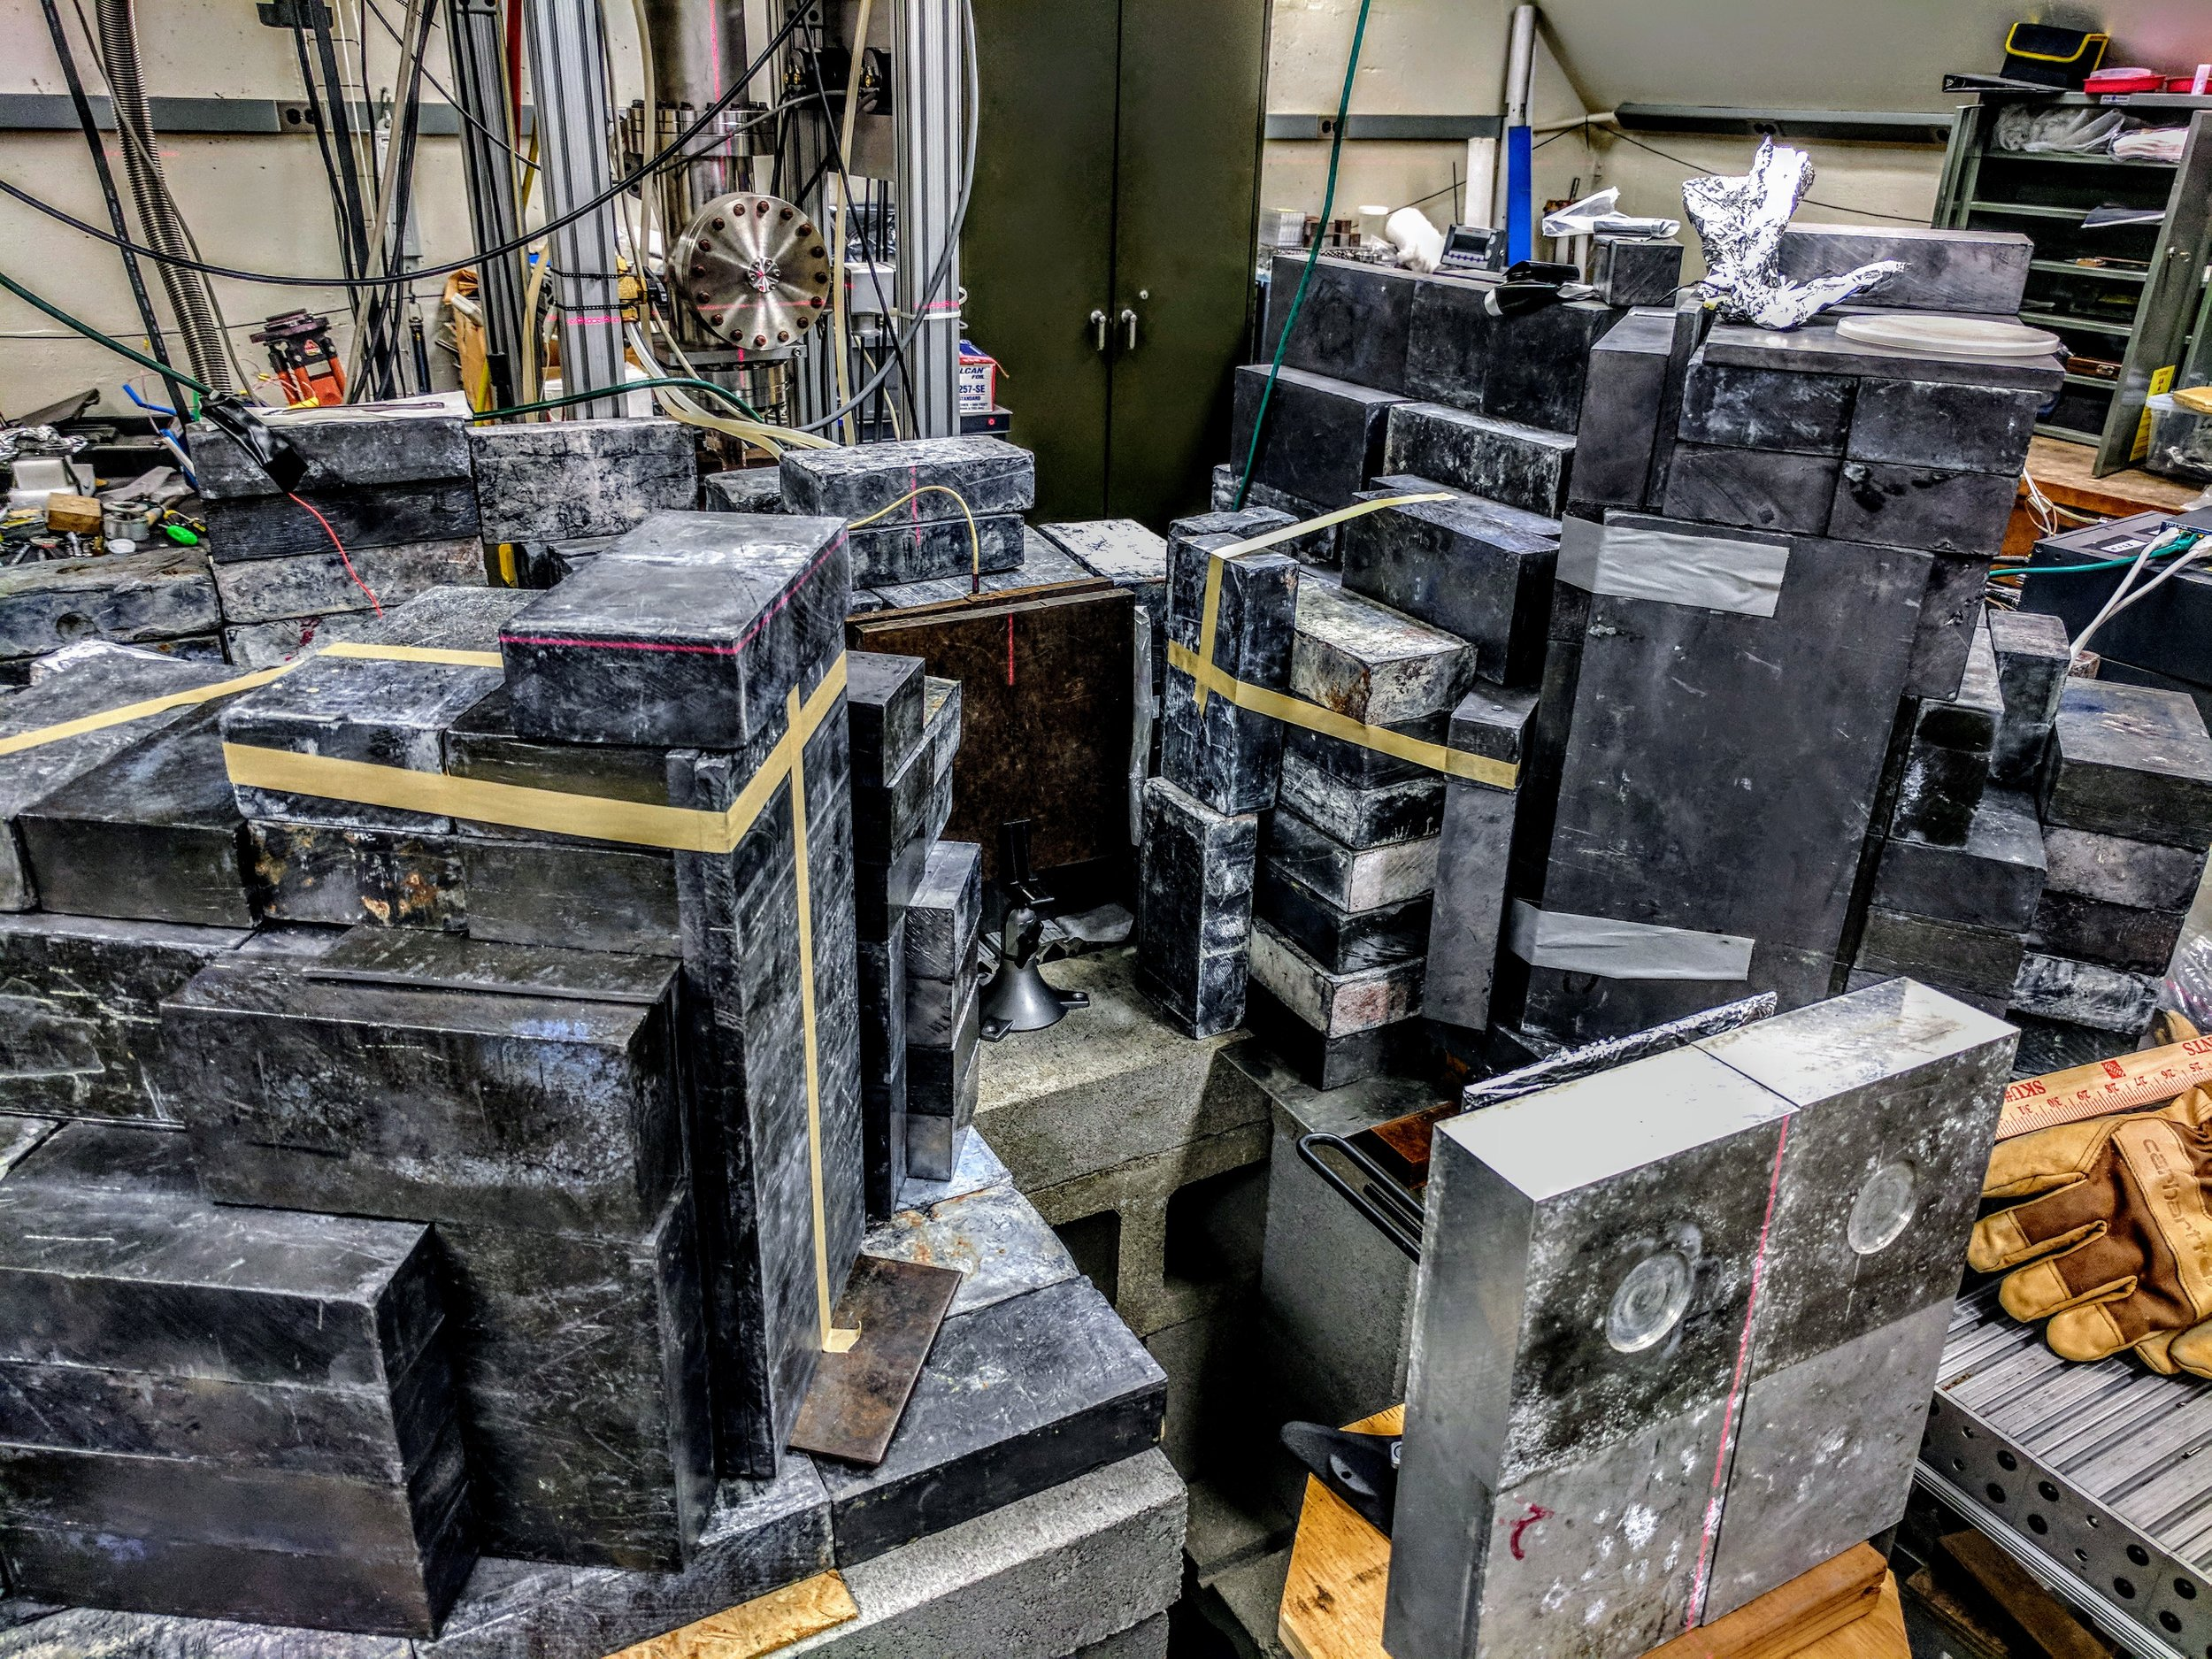 The transmission NRF experimental verification system used by LNSP. The combination of low cross sections of NRF and the slowness of the germanium detectors require us to use (multiple) tons of lead shielding to make a measurement happen.